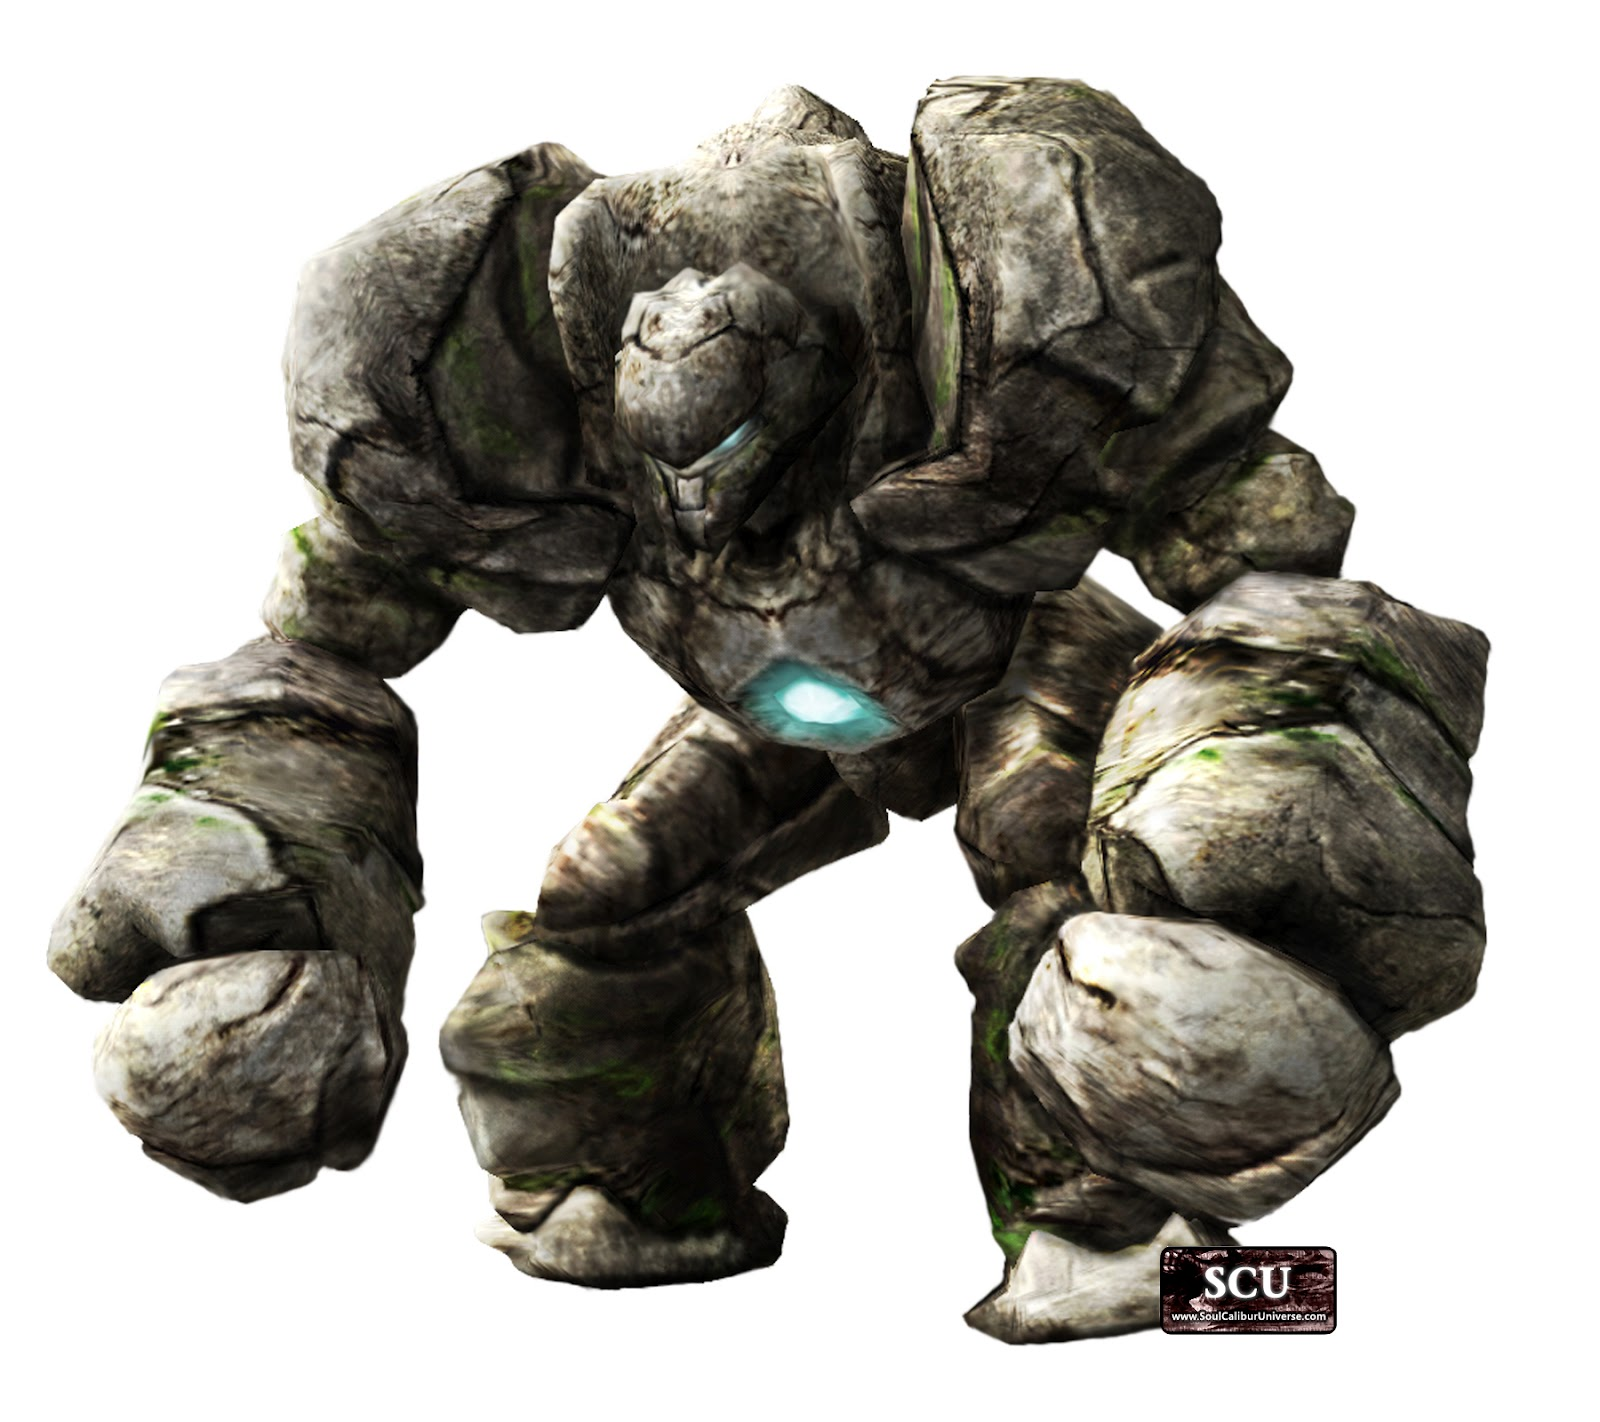 golem_from__3danimillnw.files.wordpress.com_.jpg